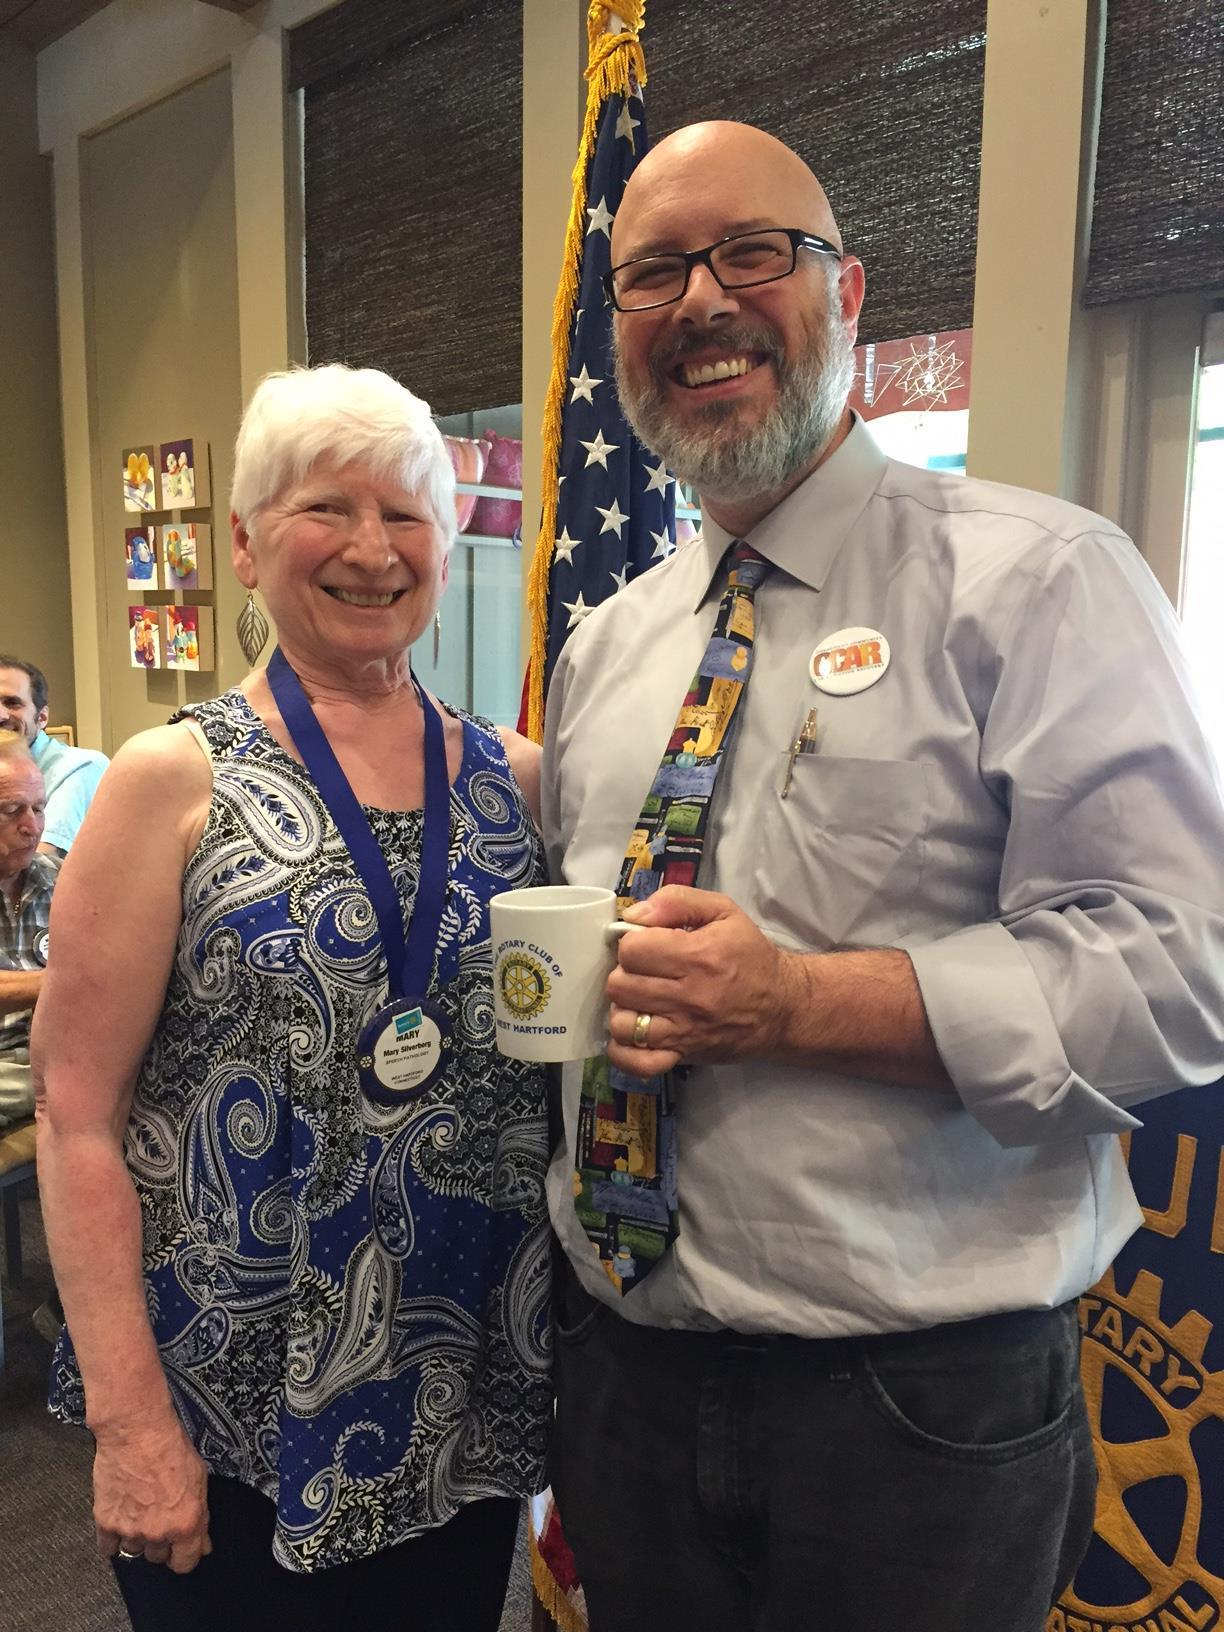 Stories Rotary Club Of West Hartford Andrew Smith Brown Jeans Cokelat 33 Rotarian And Speaker Chair Mary Silverberg With Guest Conrad Sienkiewicz Volunteer Manager From Connecticut Community For Addiction Recovery Ccar